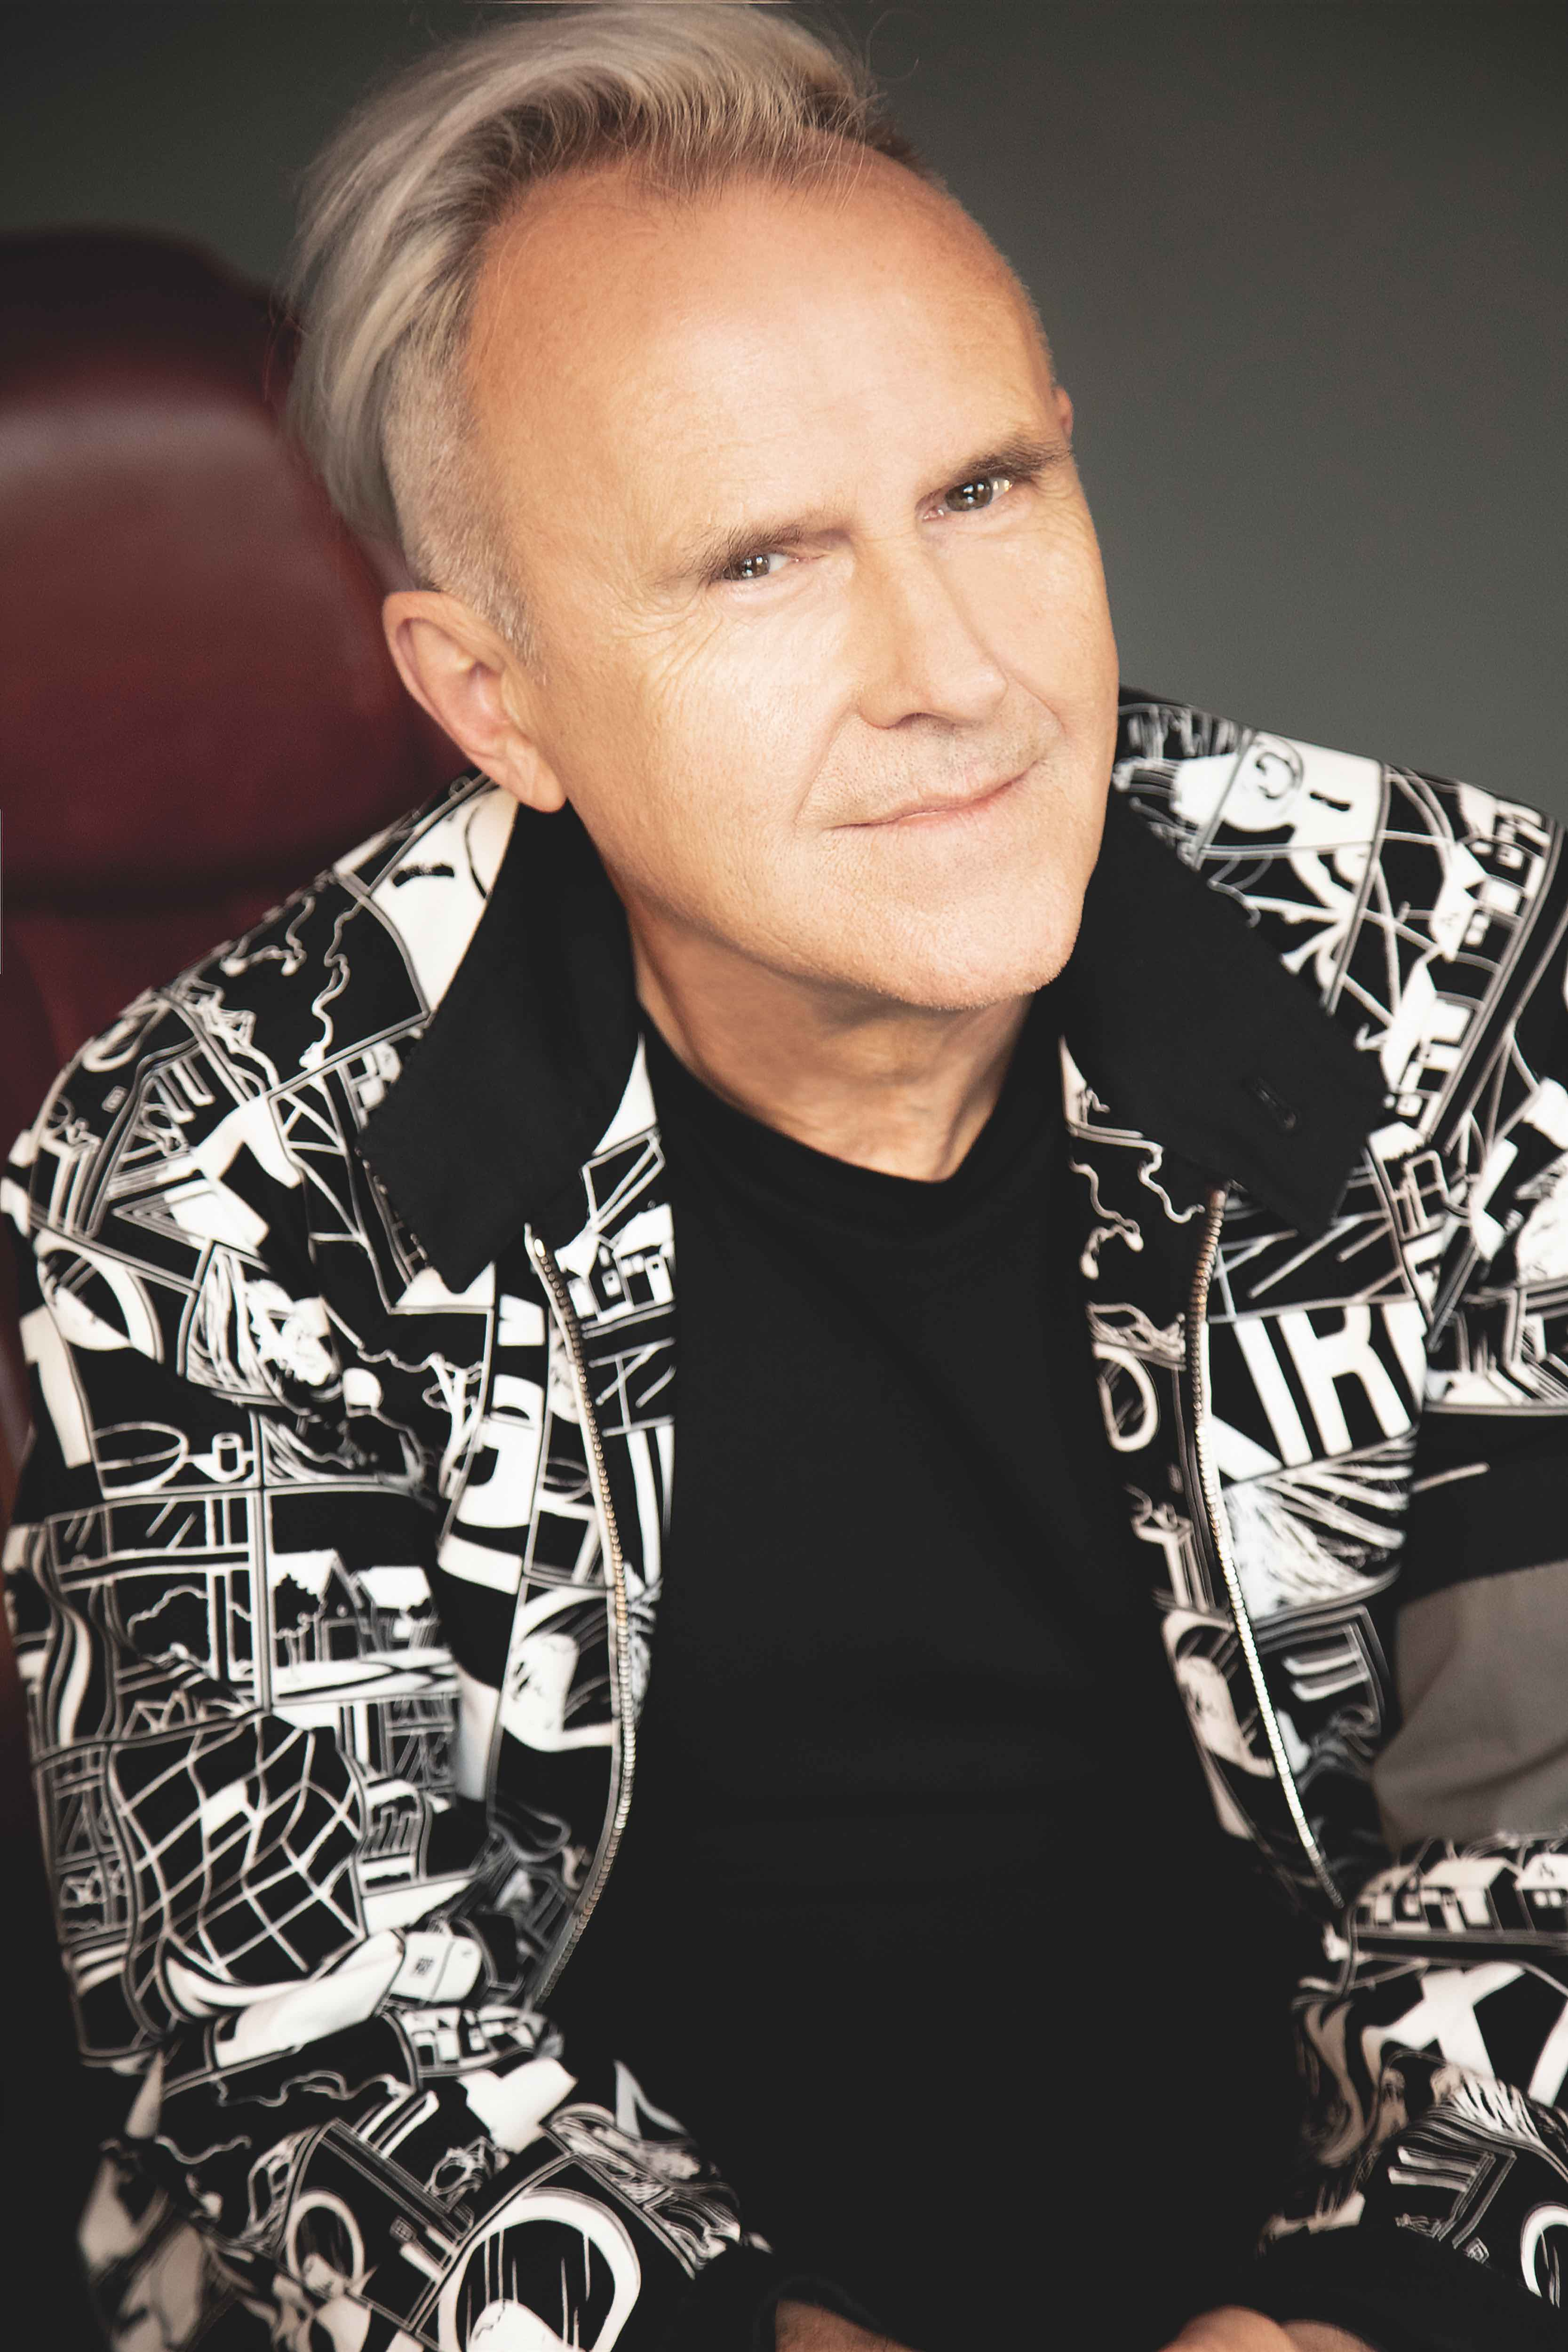 Howard Jones: A man who clearly overpays his stylist